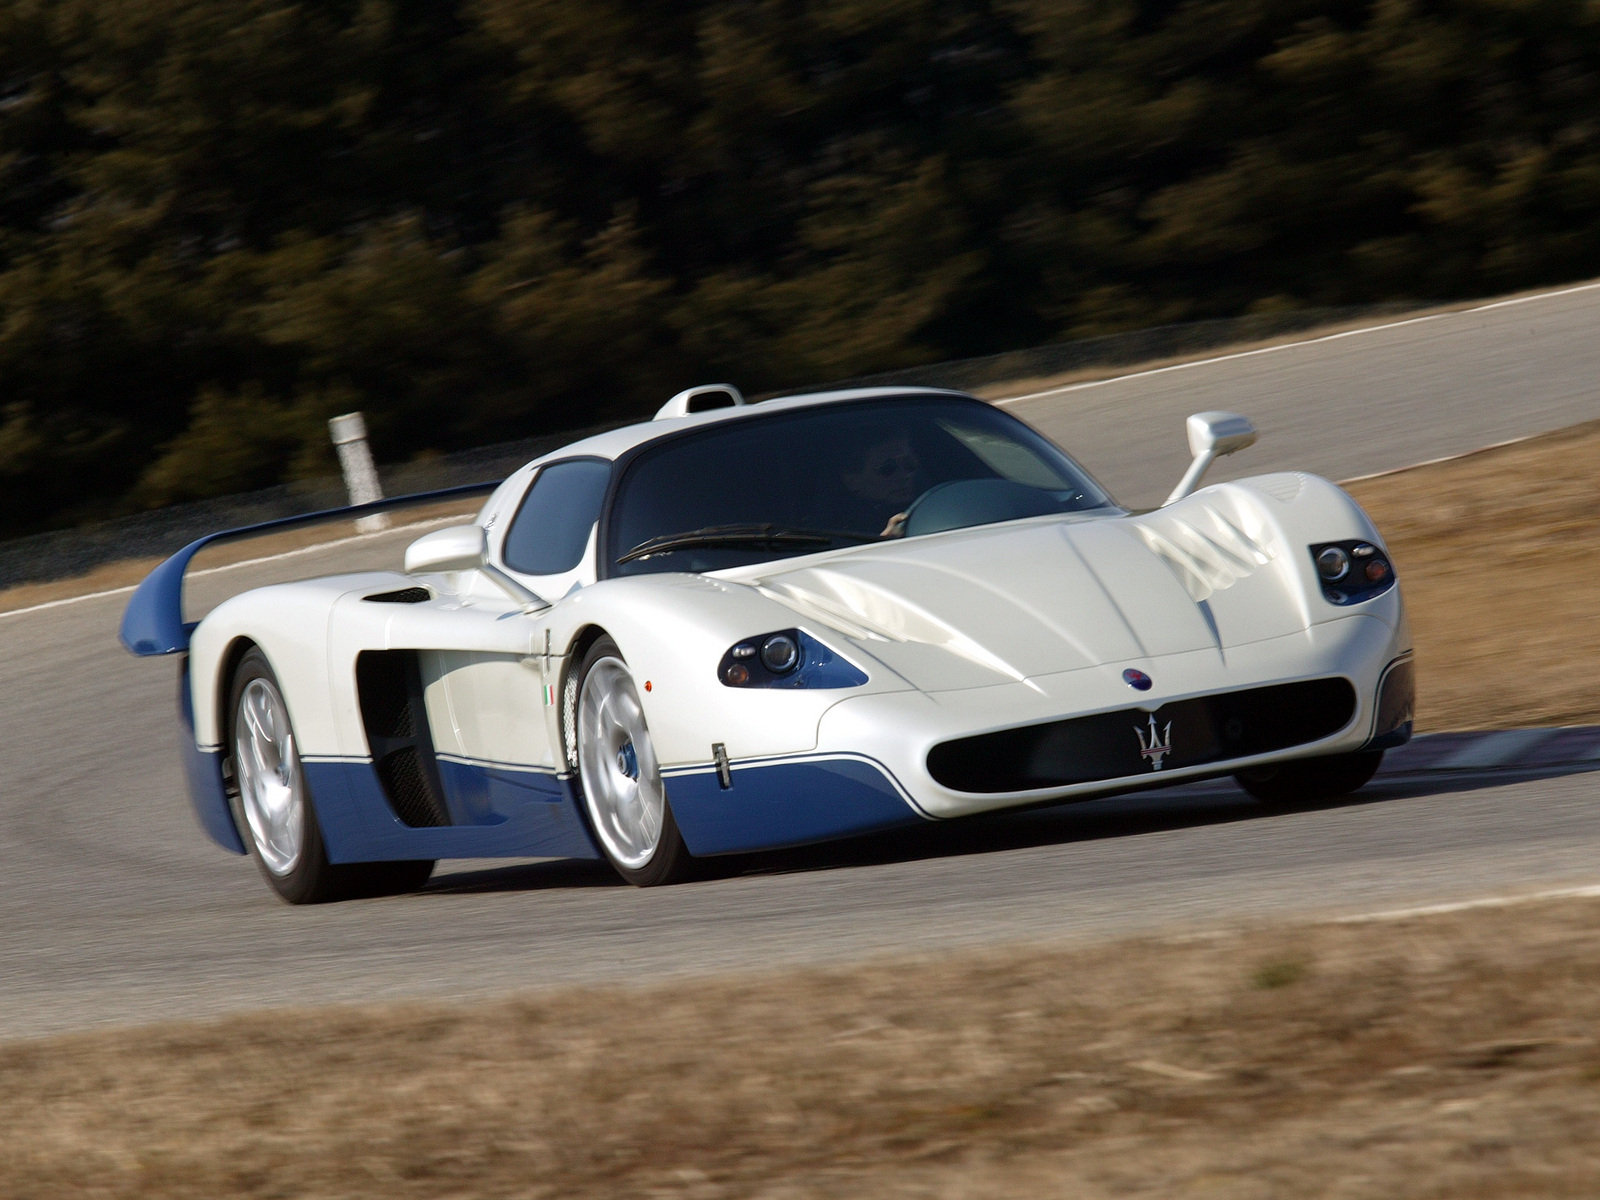 2004 2005 maserati mc12 picture 631206 car review top speed. Black Bedroom Furniture Sets. Home Design Ideas